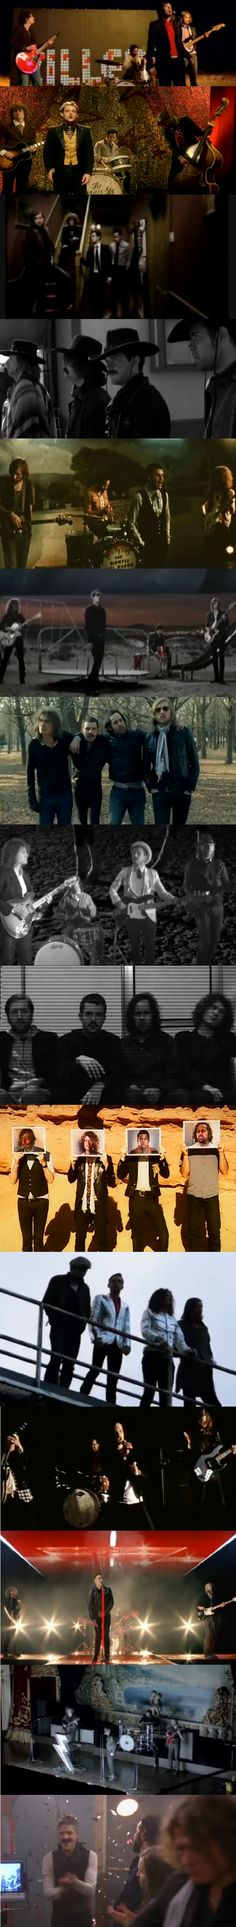 Shots from all The Killers' vids in order that have the whole band in